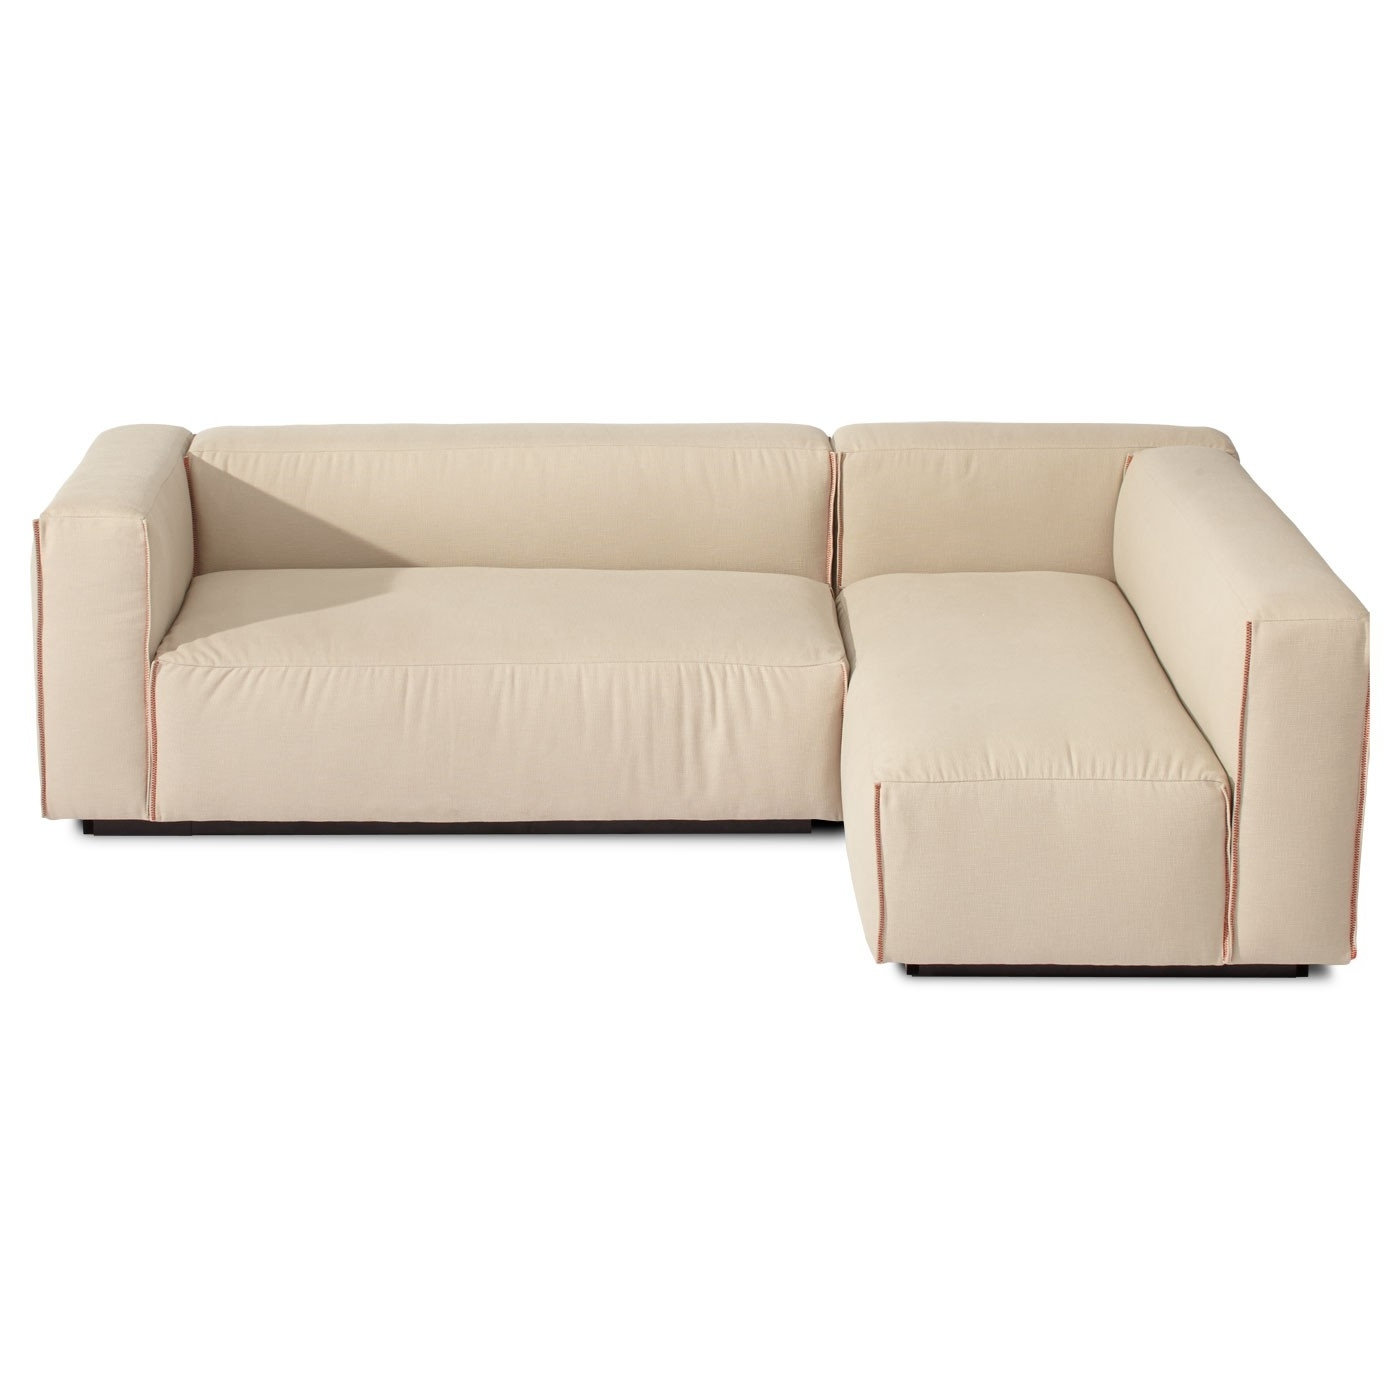 Armless Sectional Sofas For 2018 Furniture : Sofa Armless Leather Furniture Comfortable For (View 5 of 20)